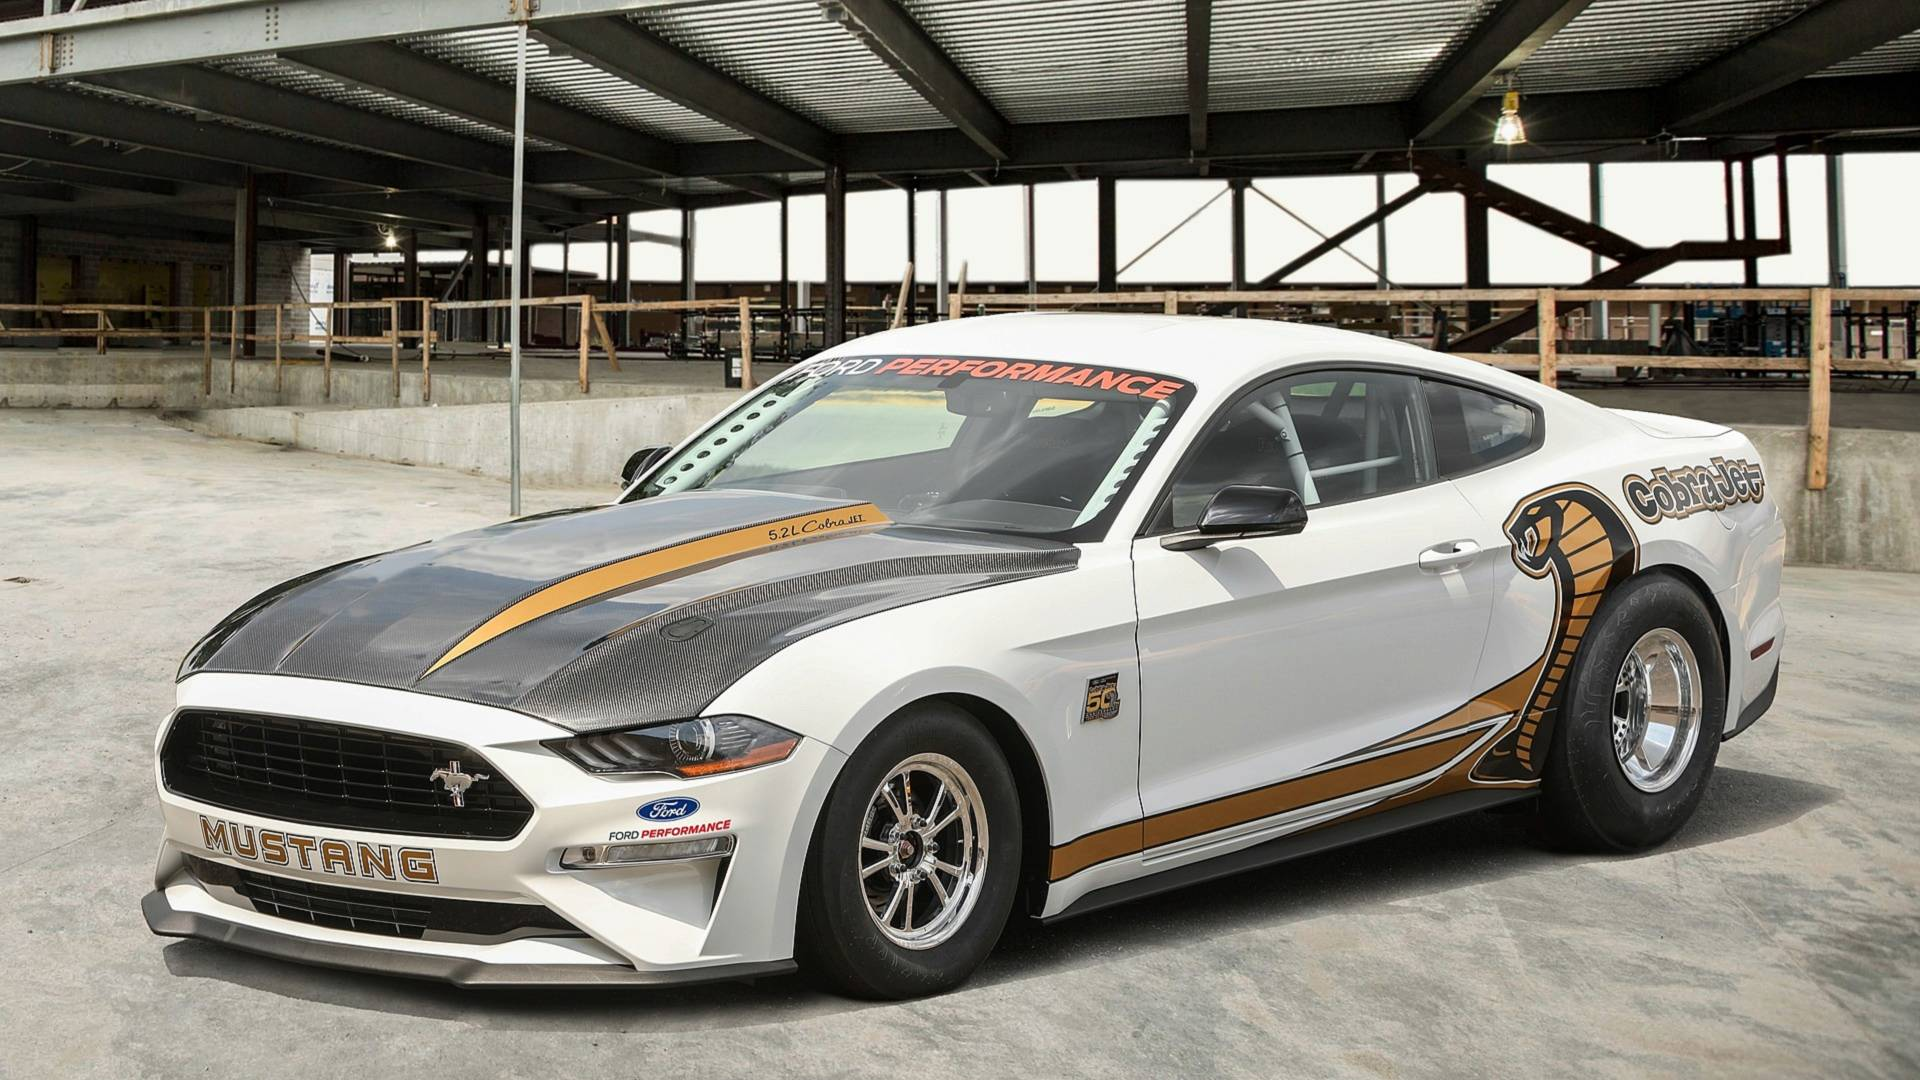 Ford mustang cobra jet is an 8 second quarter mile demon killer